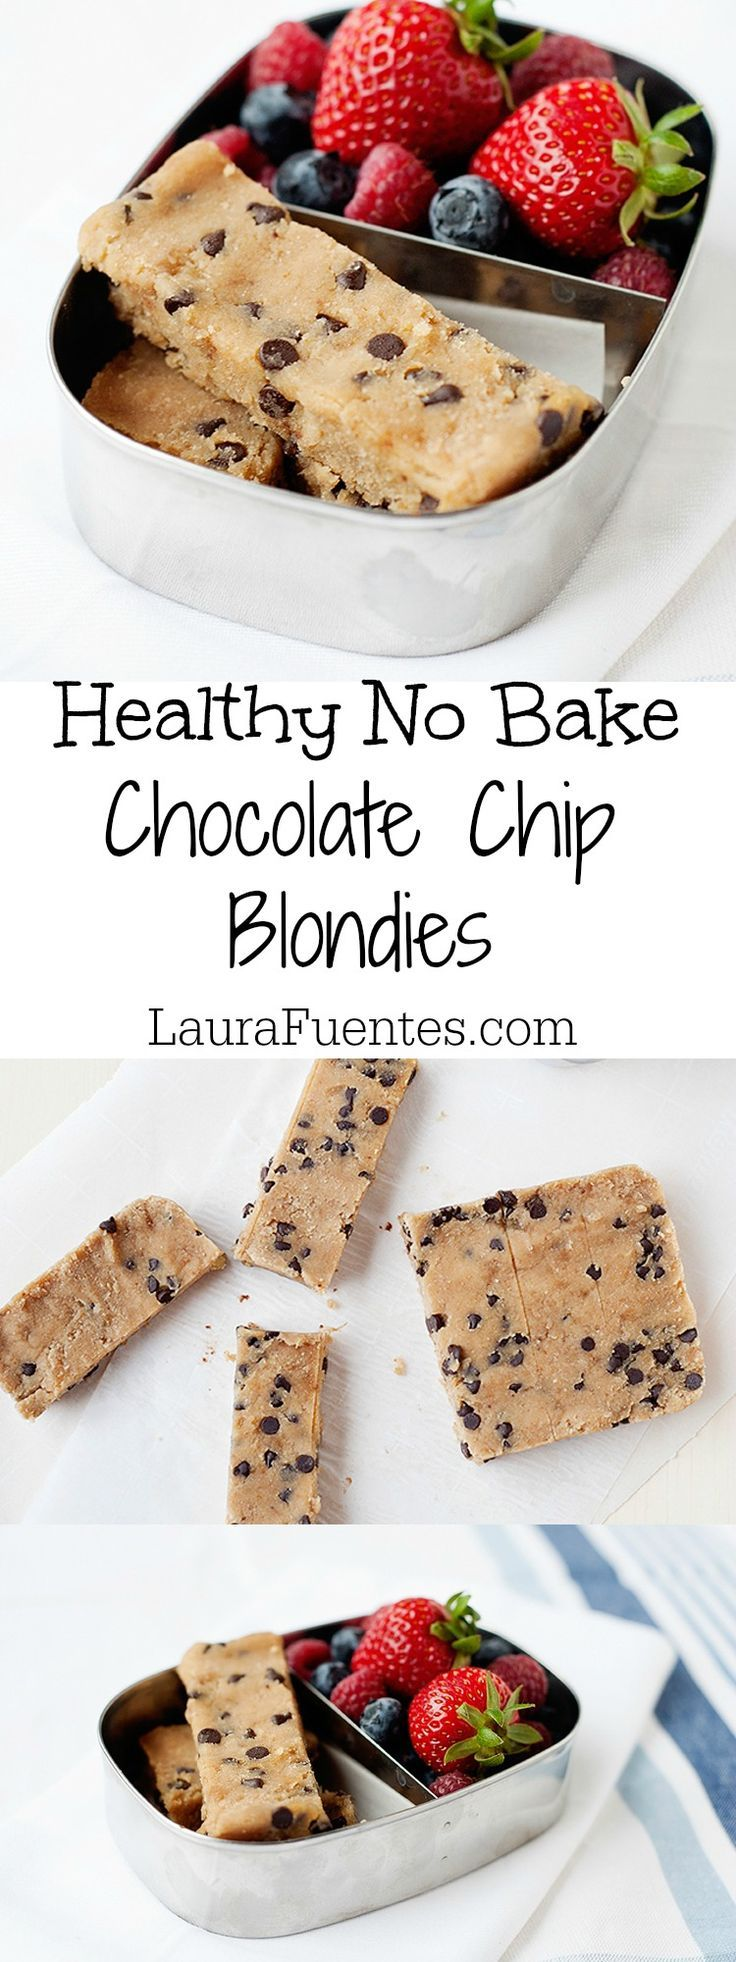 0e107bbe10e39bdf4c75a6621e973ac2  chocolate chip blondies mini chocolate chips Well balanced No Bake Delicious Chocolate Potato chip Blondies are actually visiting modify exactly how you consume snack foods!